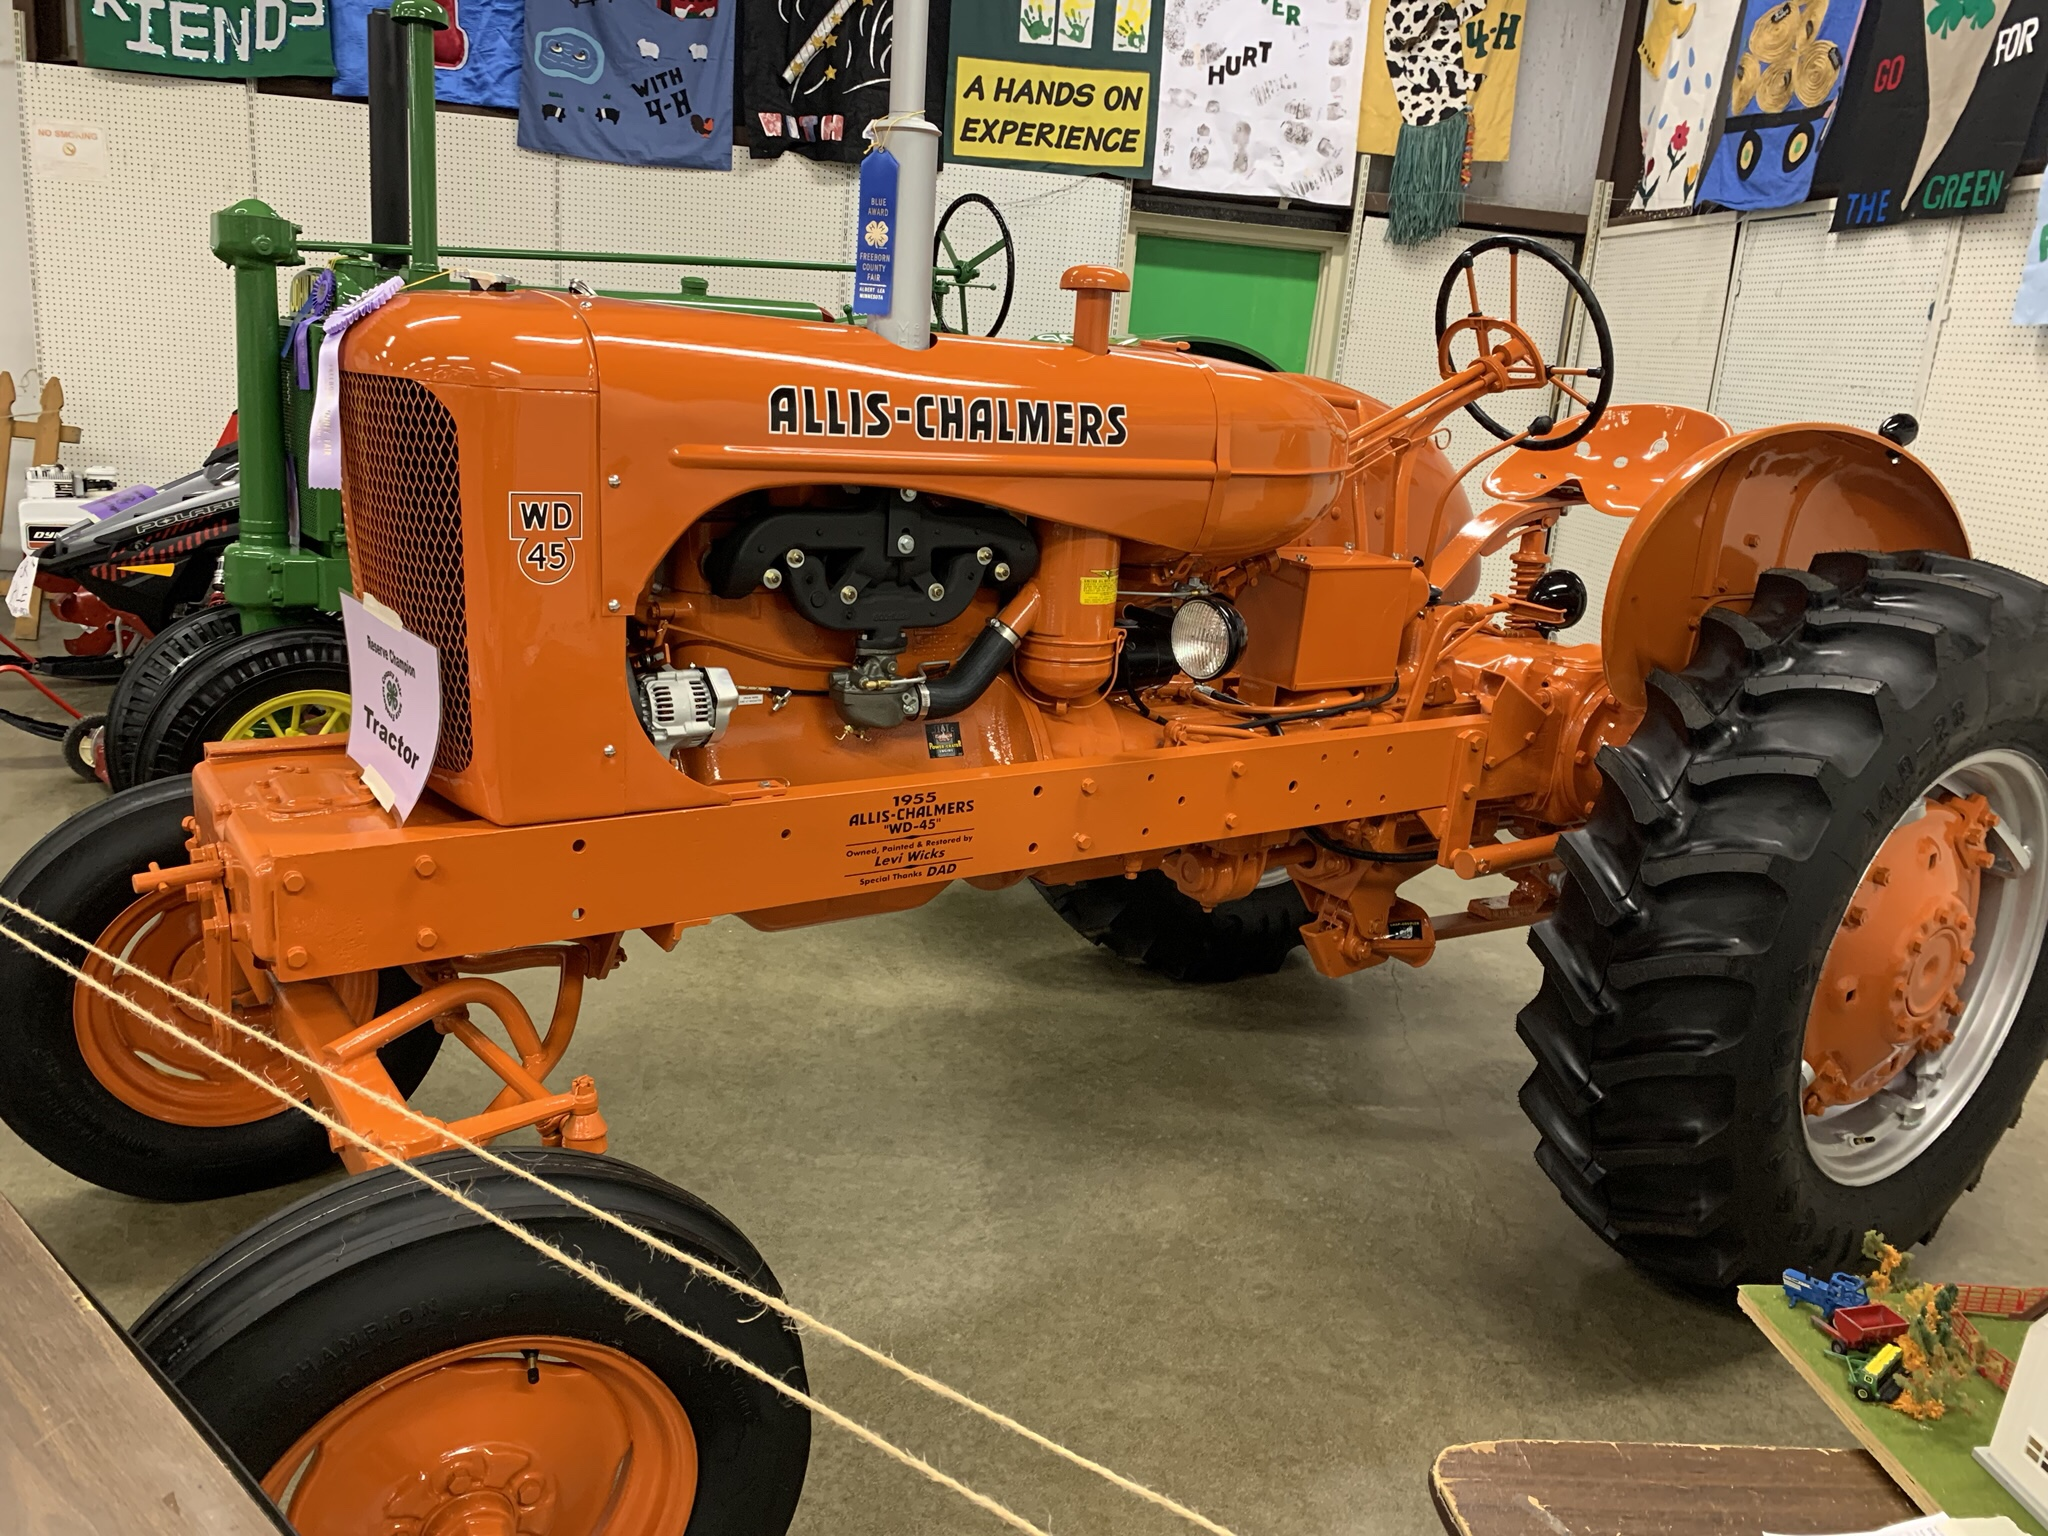 Everyone should have a favorite tractor.